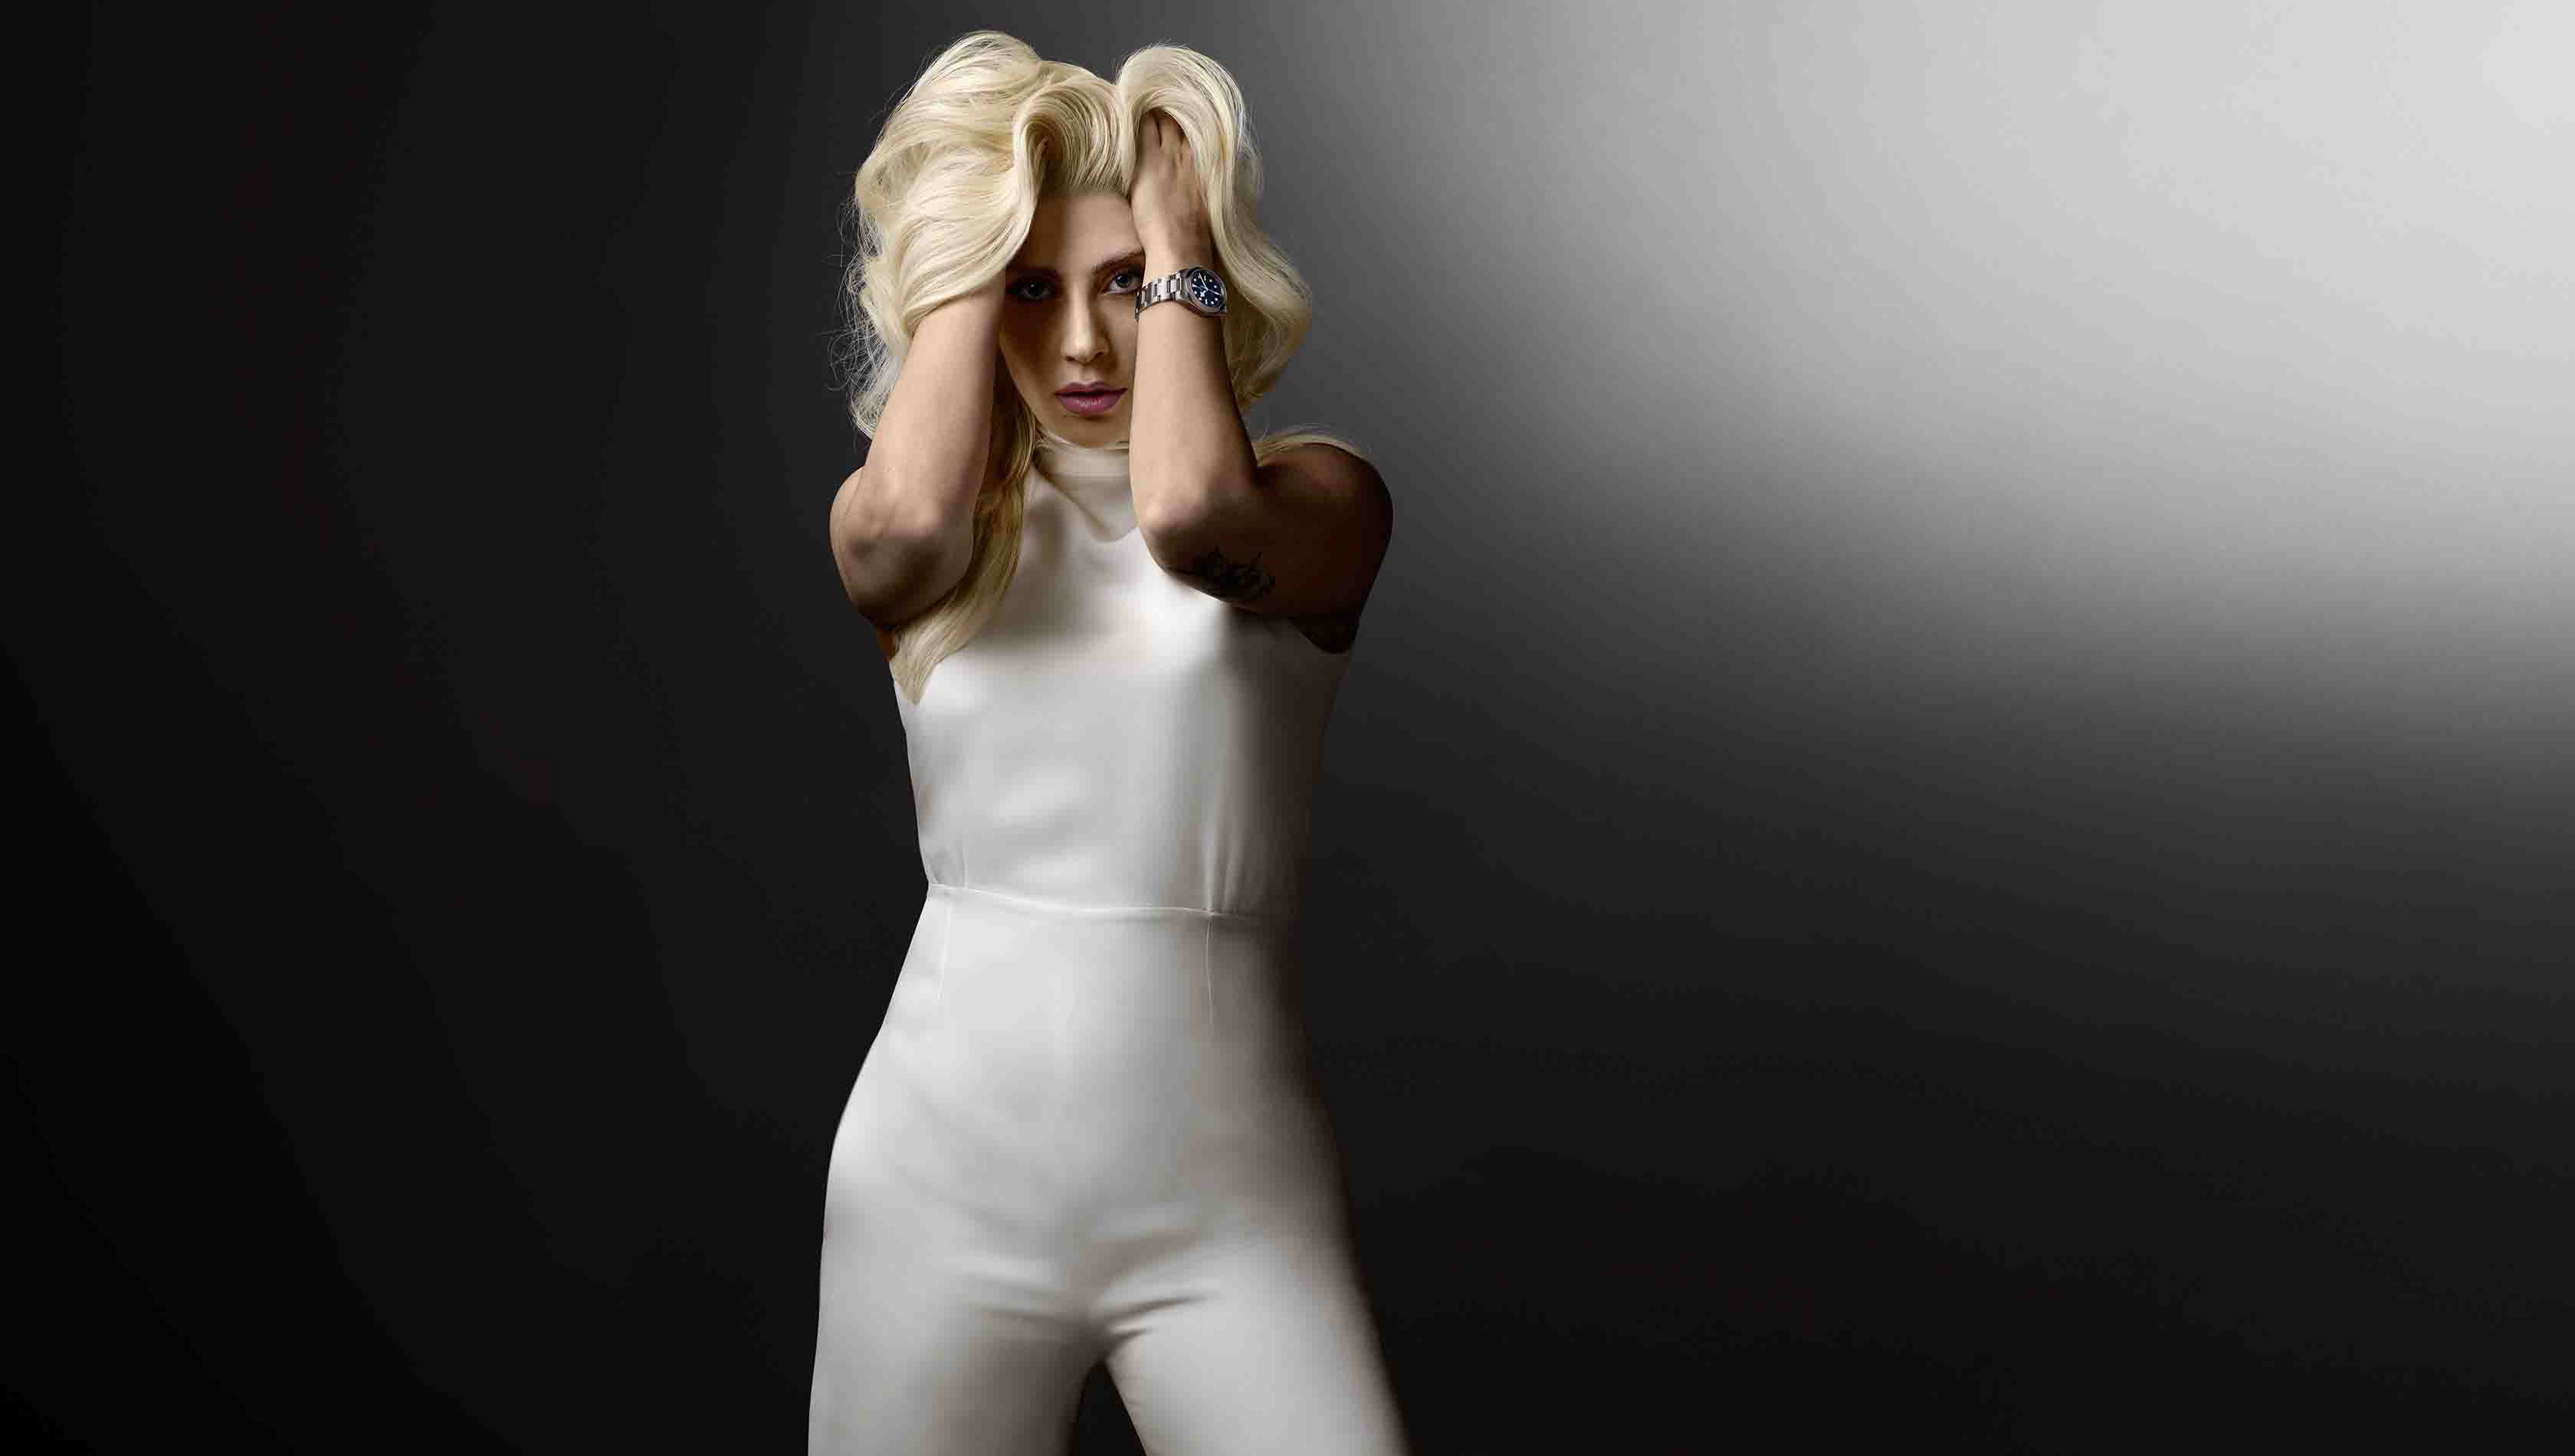 Lady-Gaga-Female-Prototype